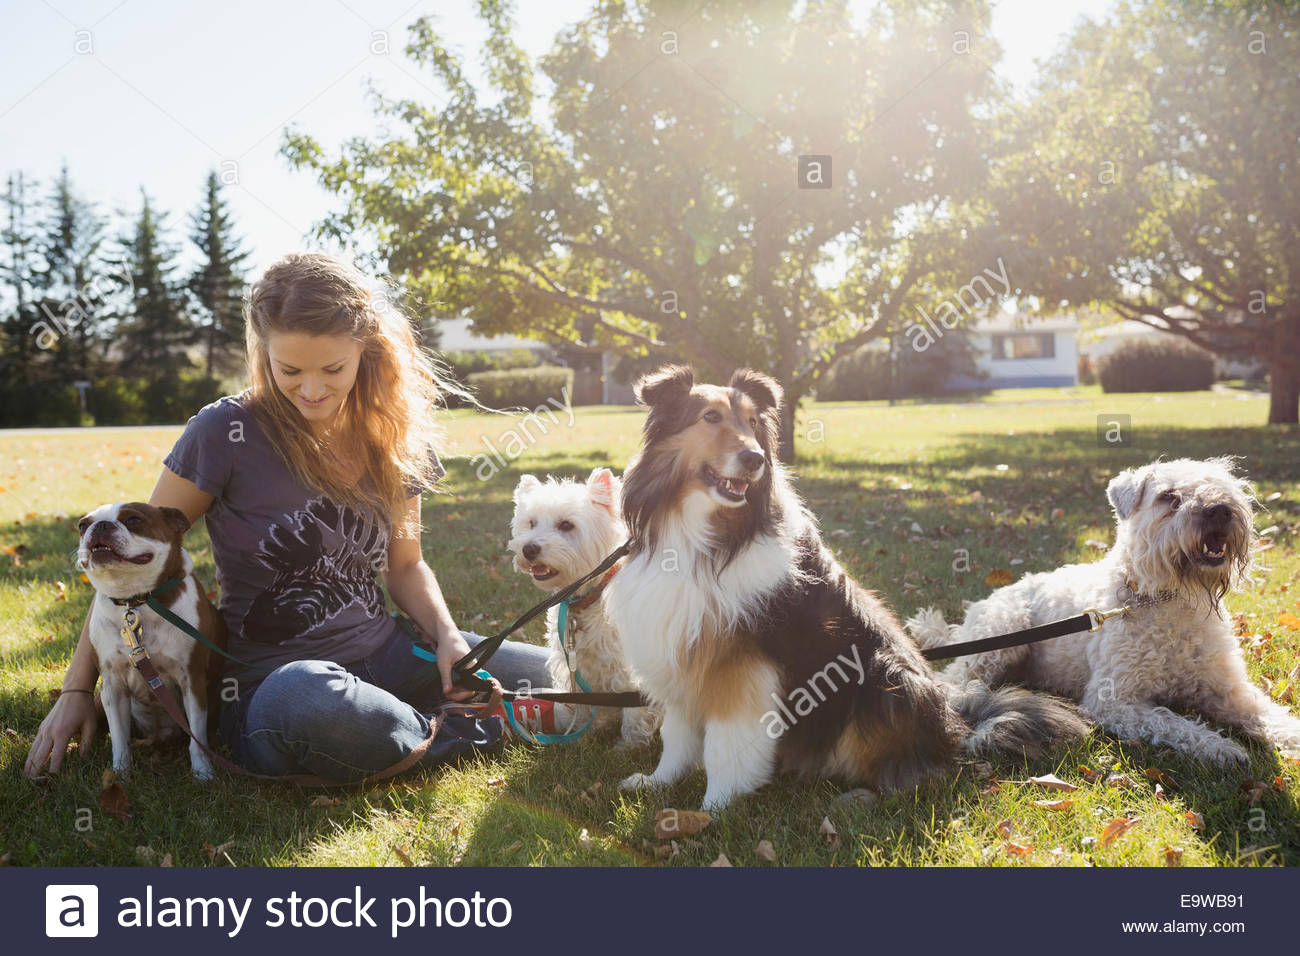 Dog walker sitting with dogs in sunny park - Stock Image